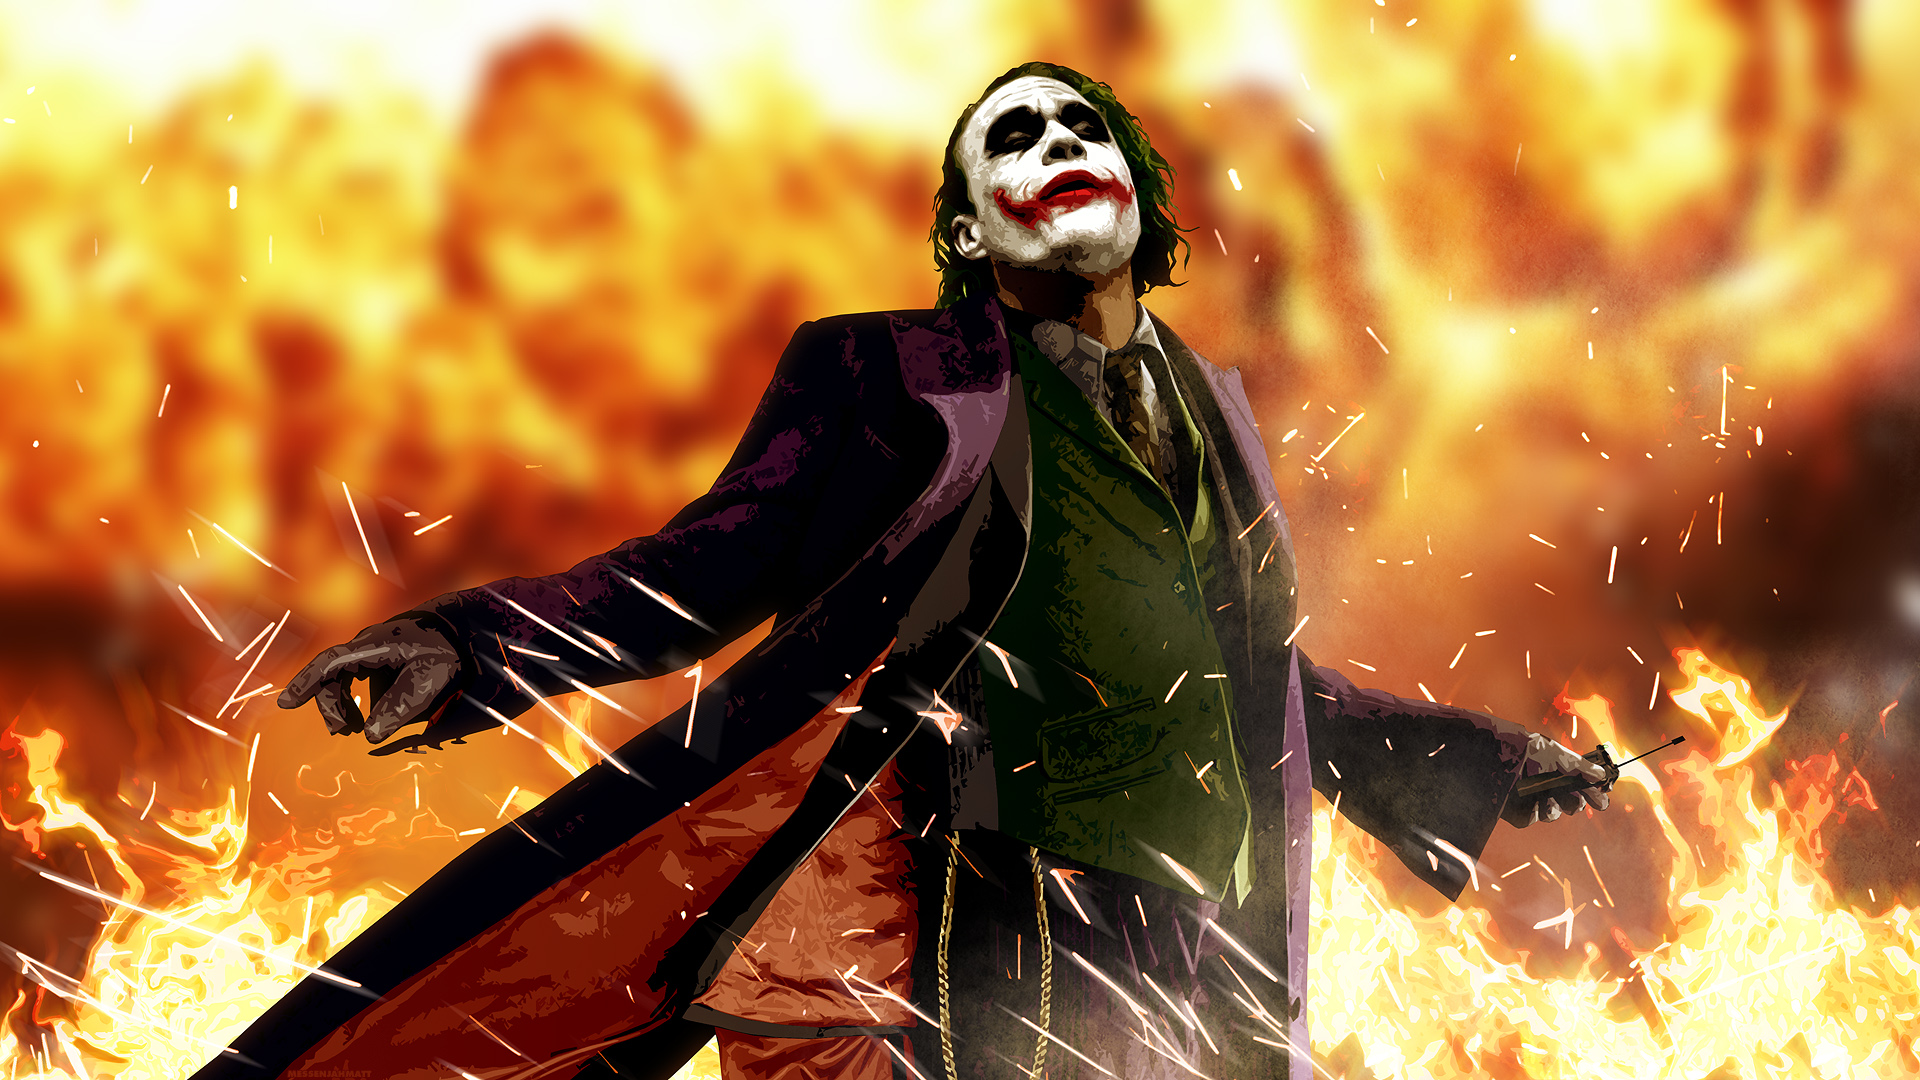 by-far-my-favourite-joker-added-by-FAILtim-wallpaper-wp3603776